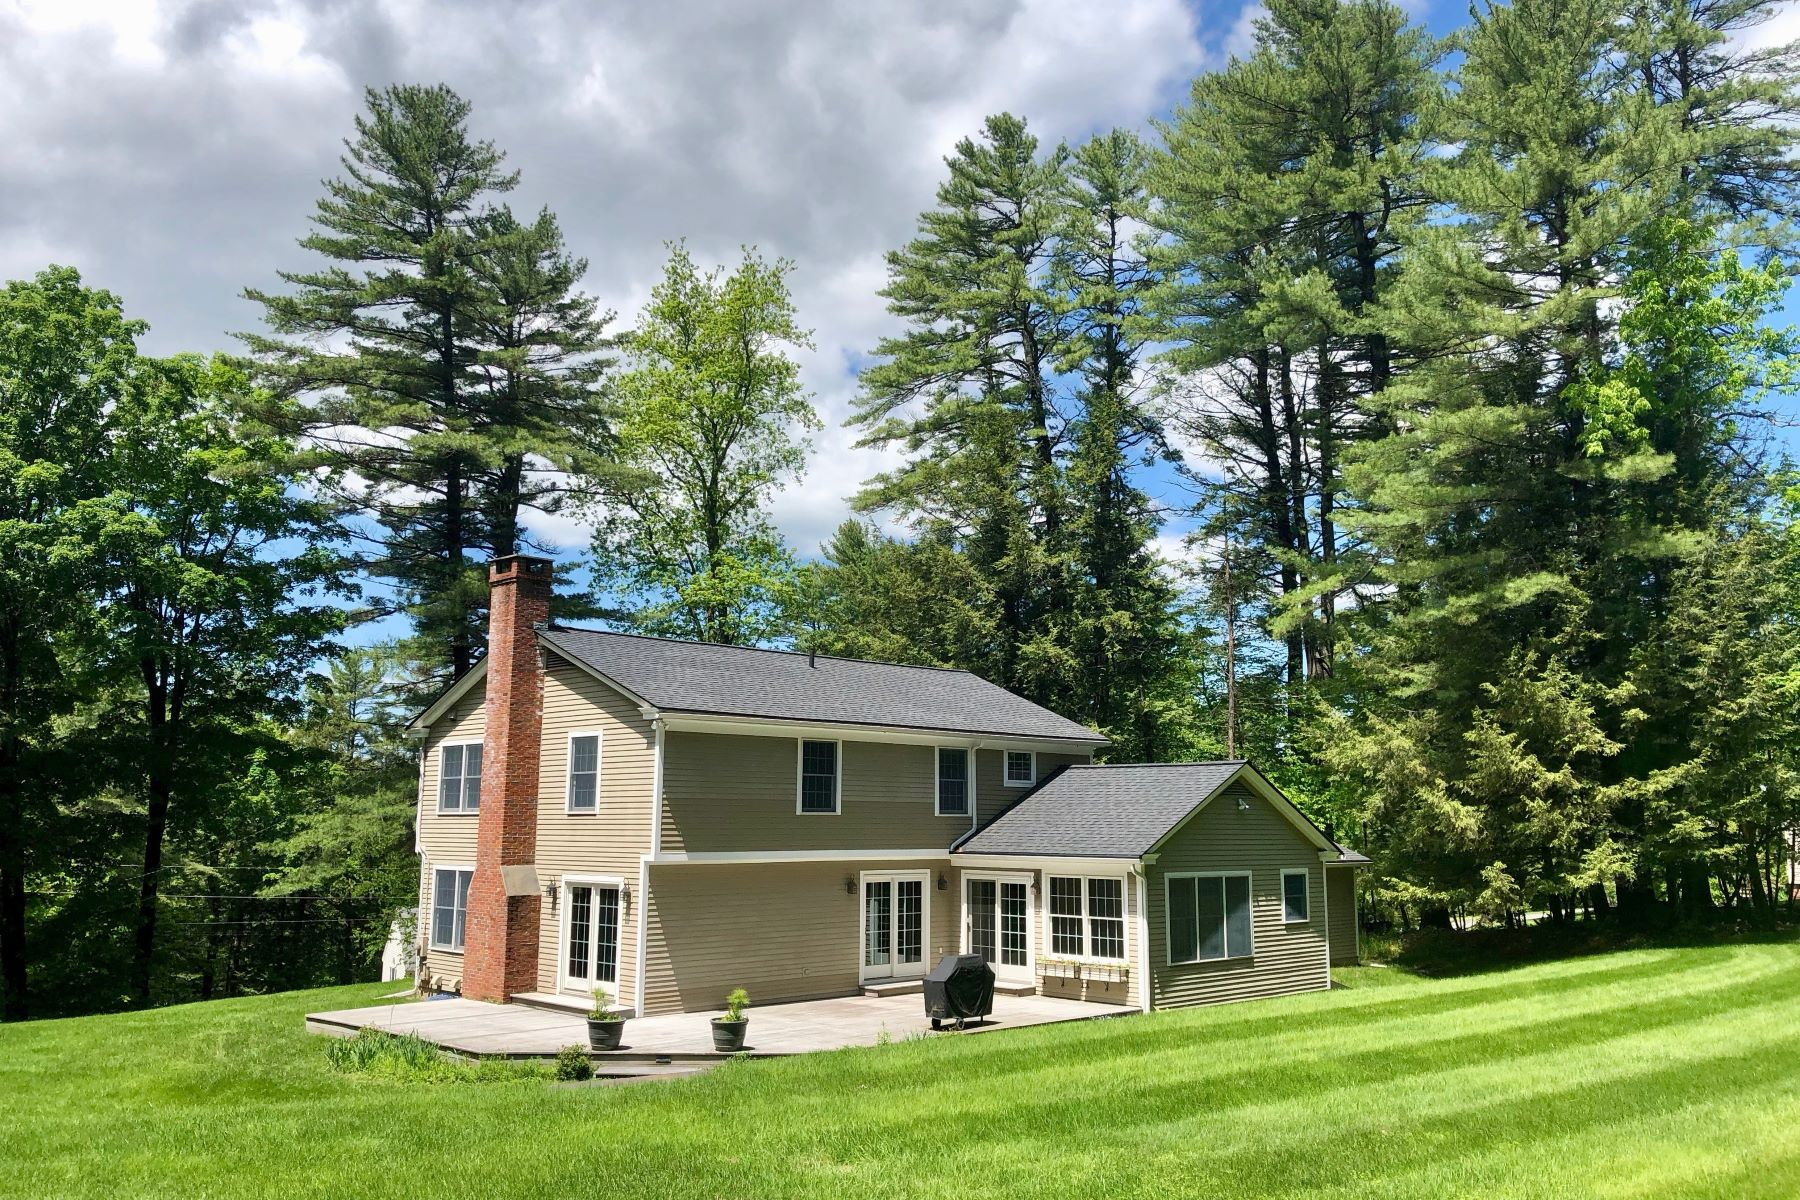 Single Family Homes for Sale at Wonderful In-Town Hanover Location 4 Heneage Lane Hanover, New Hampshire 03755 United States